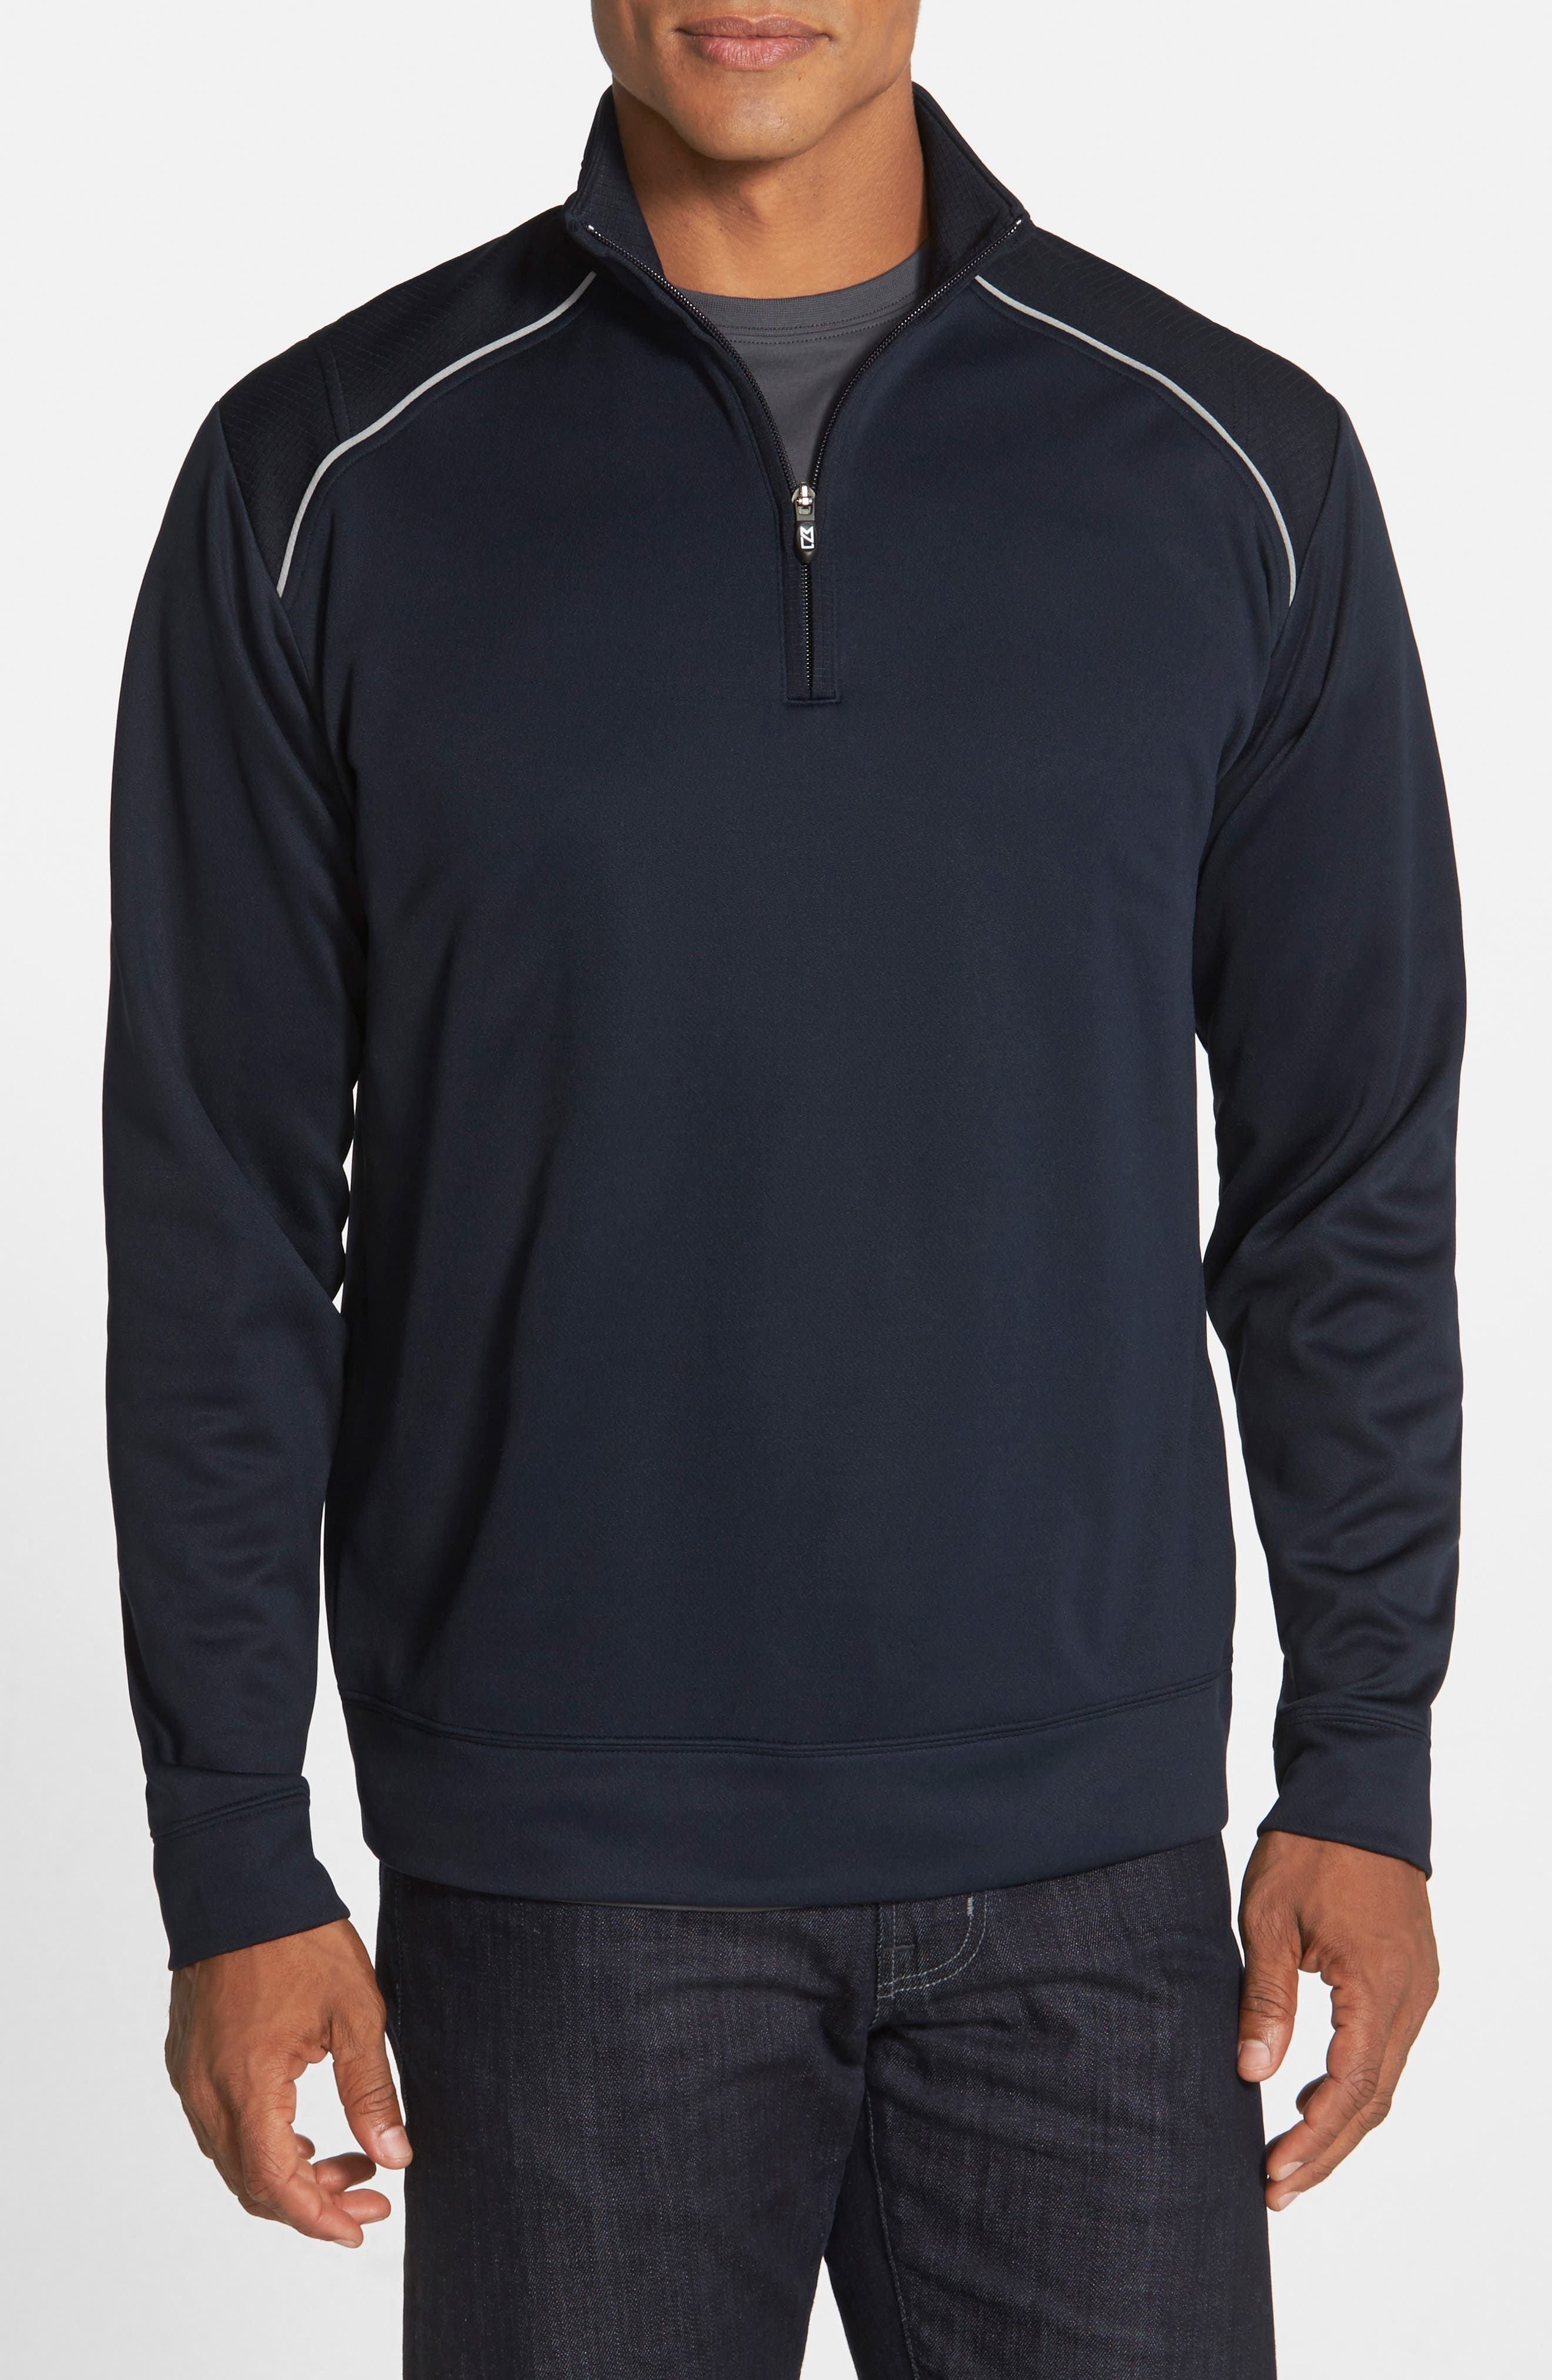 CUTTER & BUCK, Ridge WeatherTec Wind & Water Resistant Pullover, Alternate thumbnail 3, color, NAVY BLUE